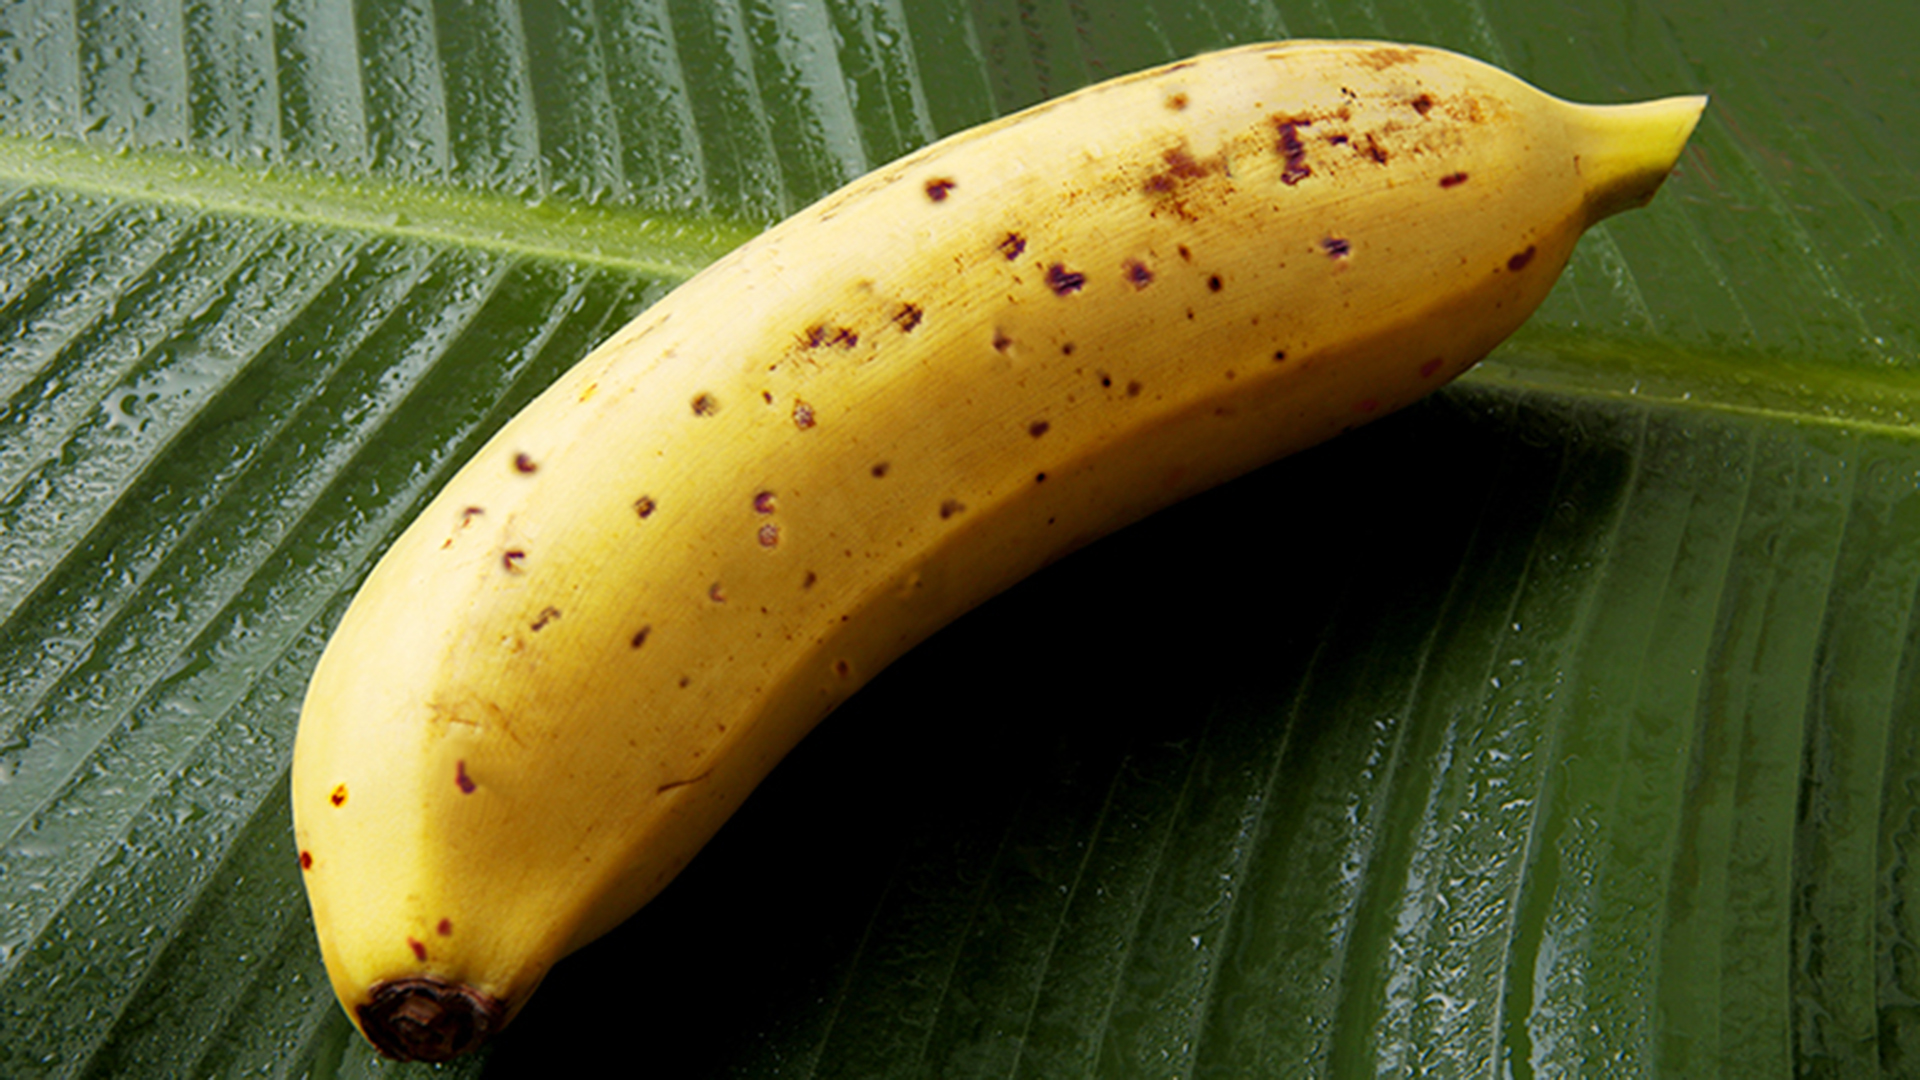 Scientists Invent Banana With Edible Peel